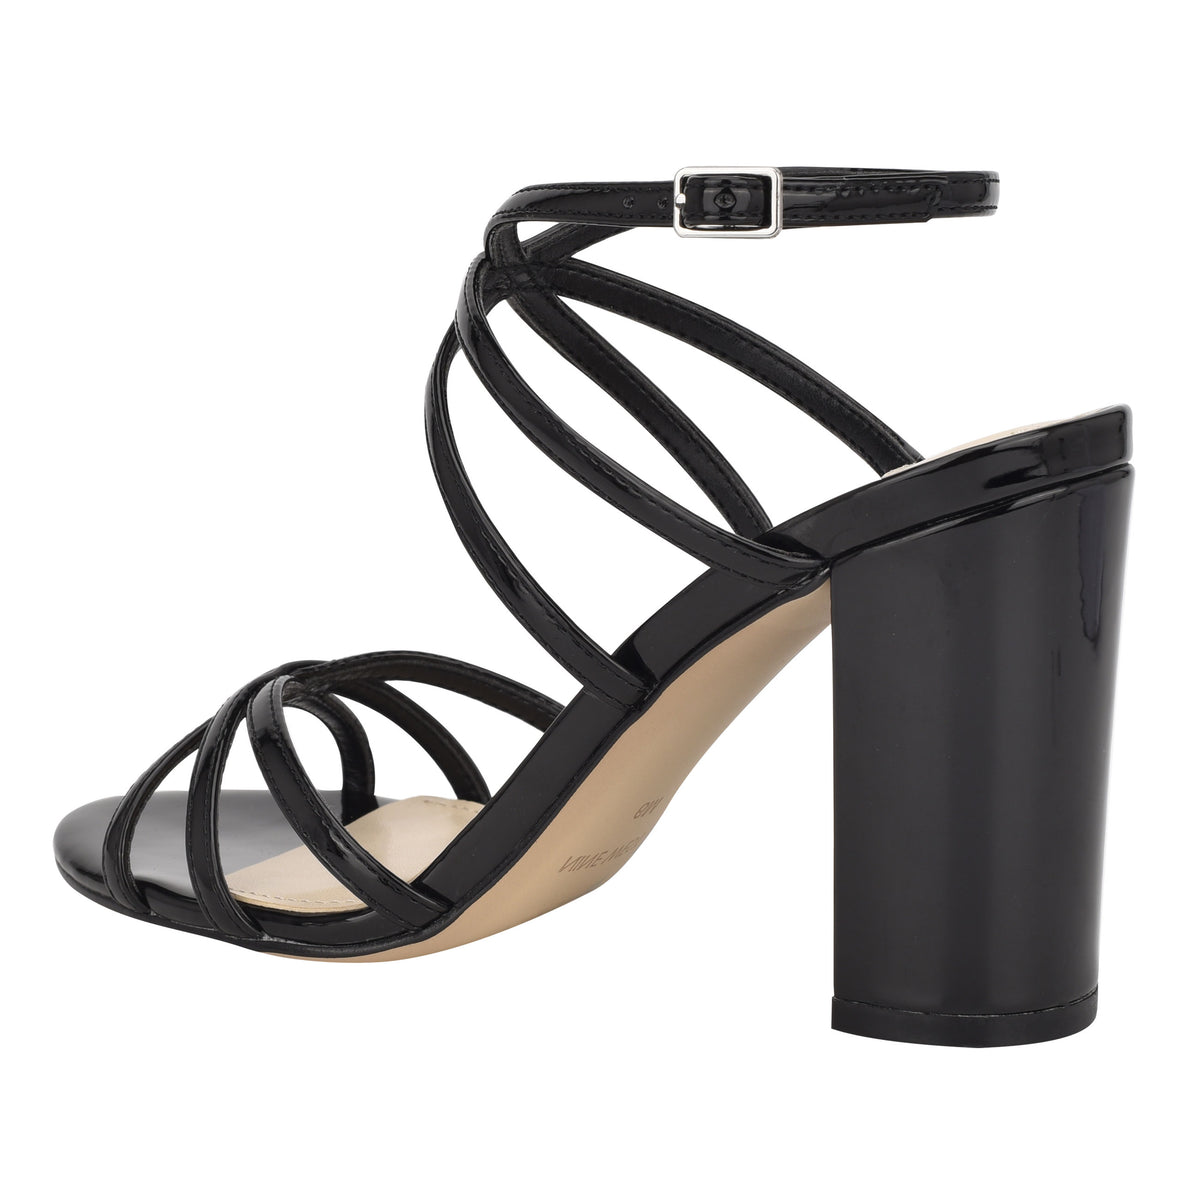 Obvi Ankle Strap Dress Sandals